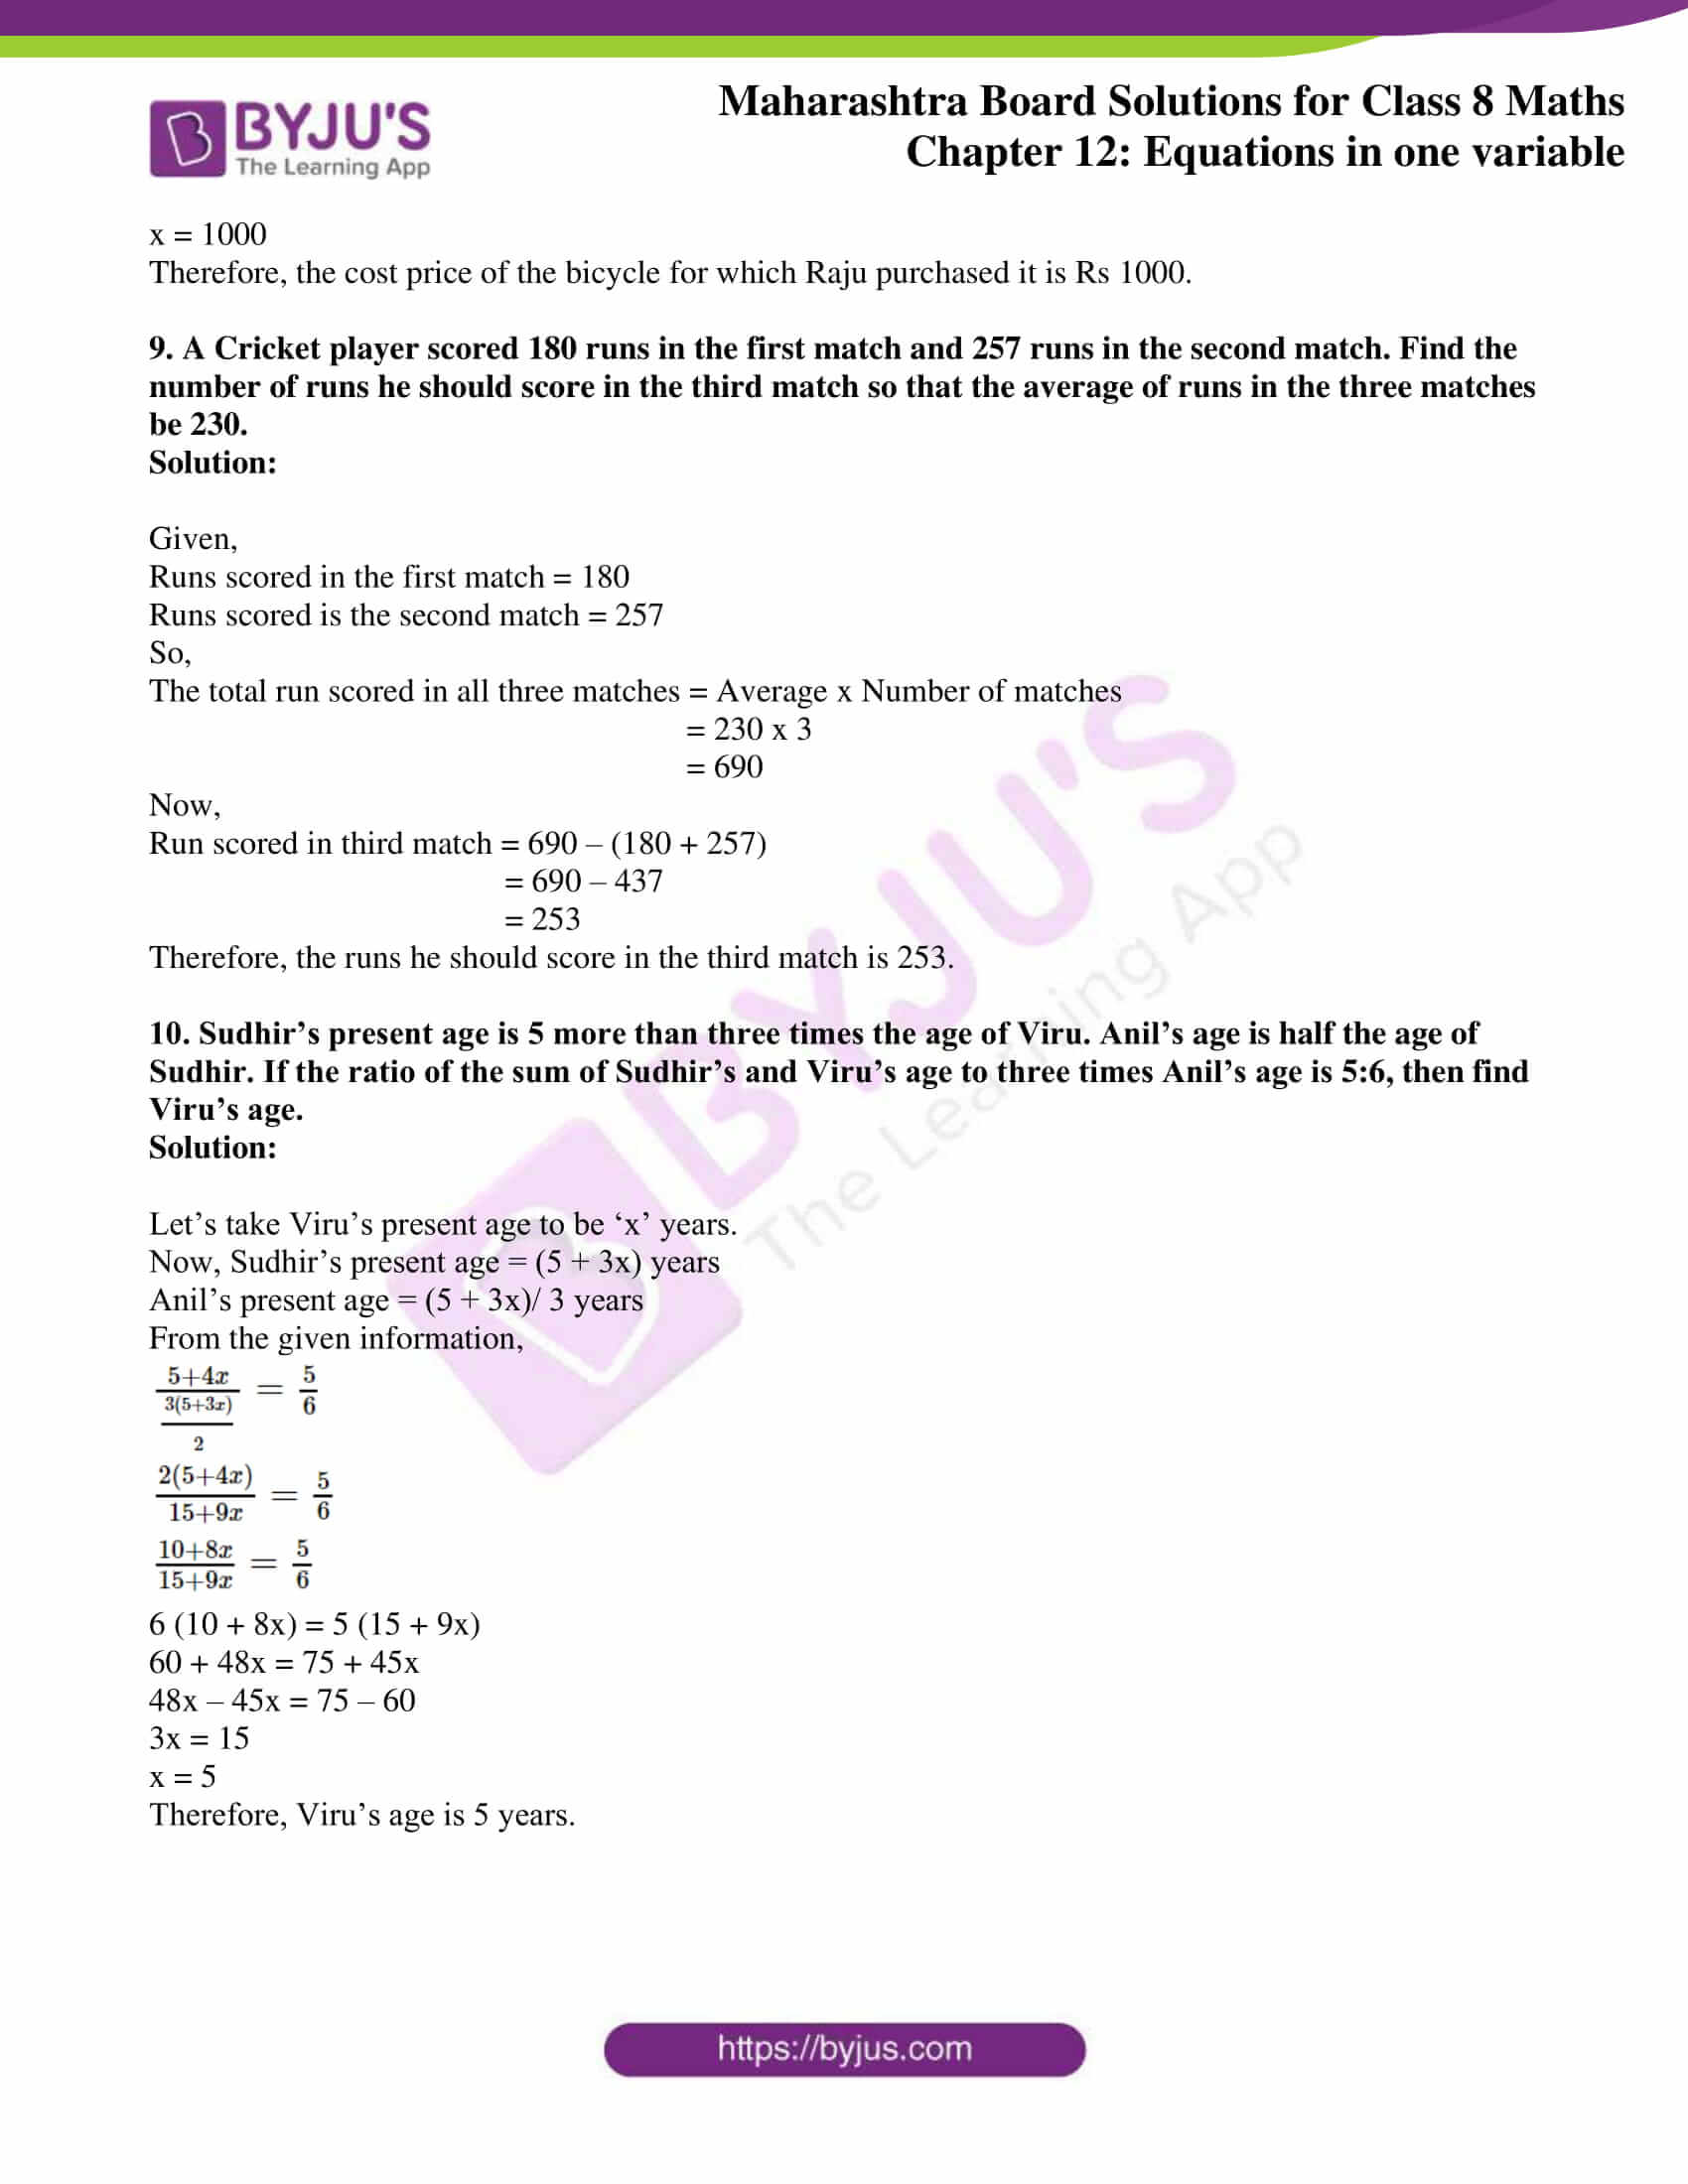 msbshse sol for class 8 maths chapter 12 10